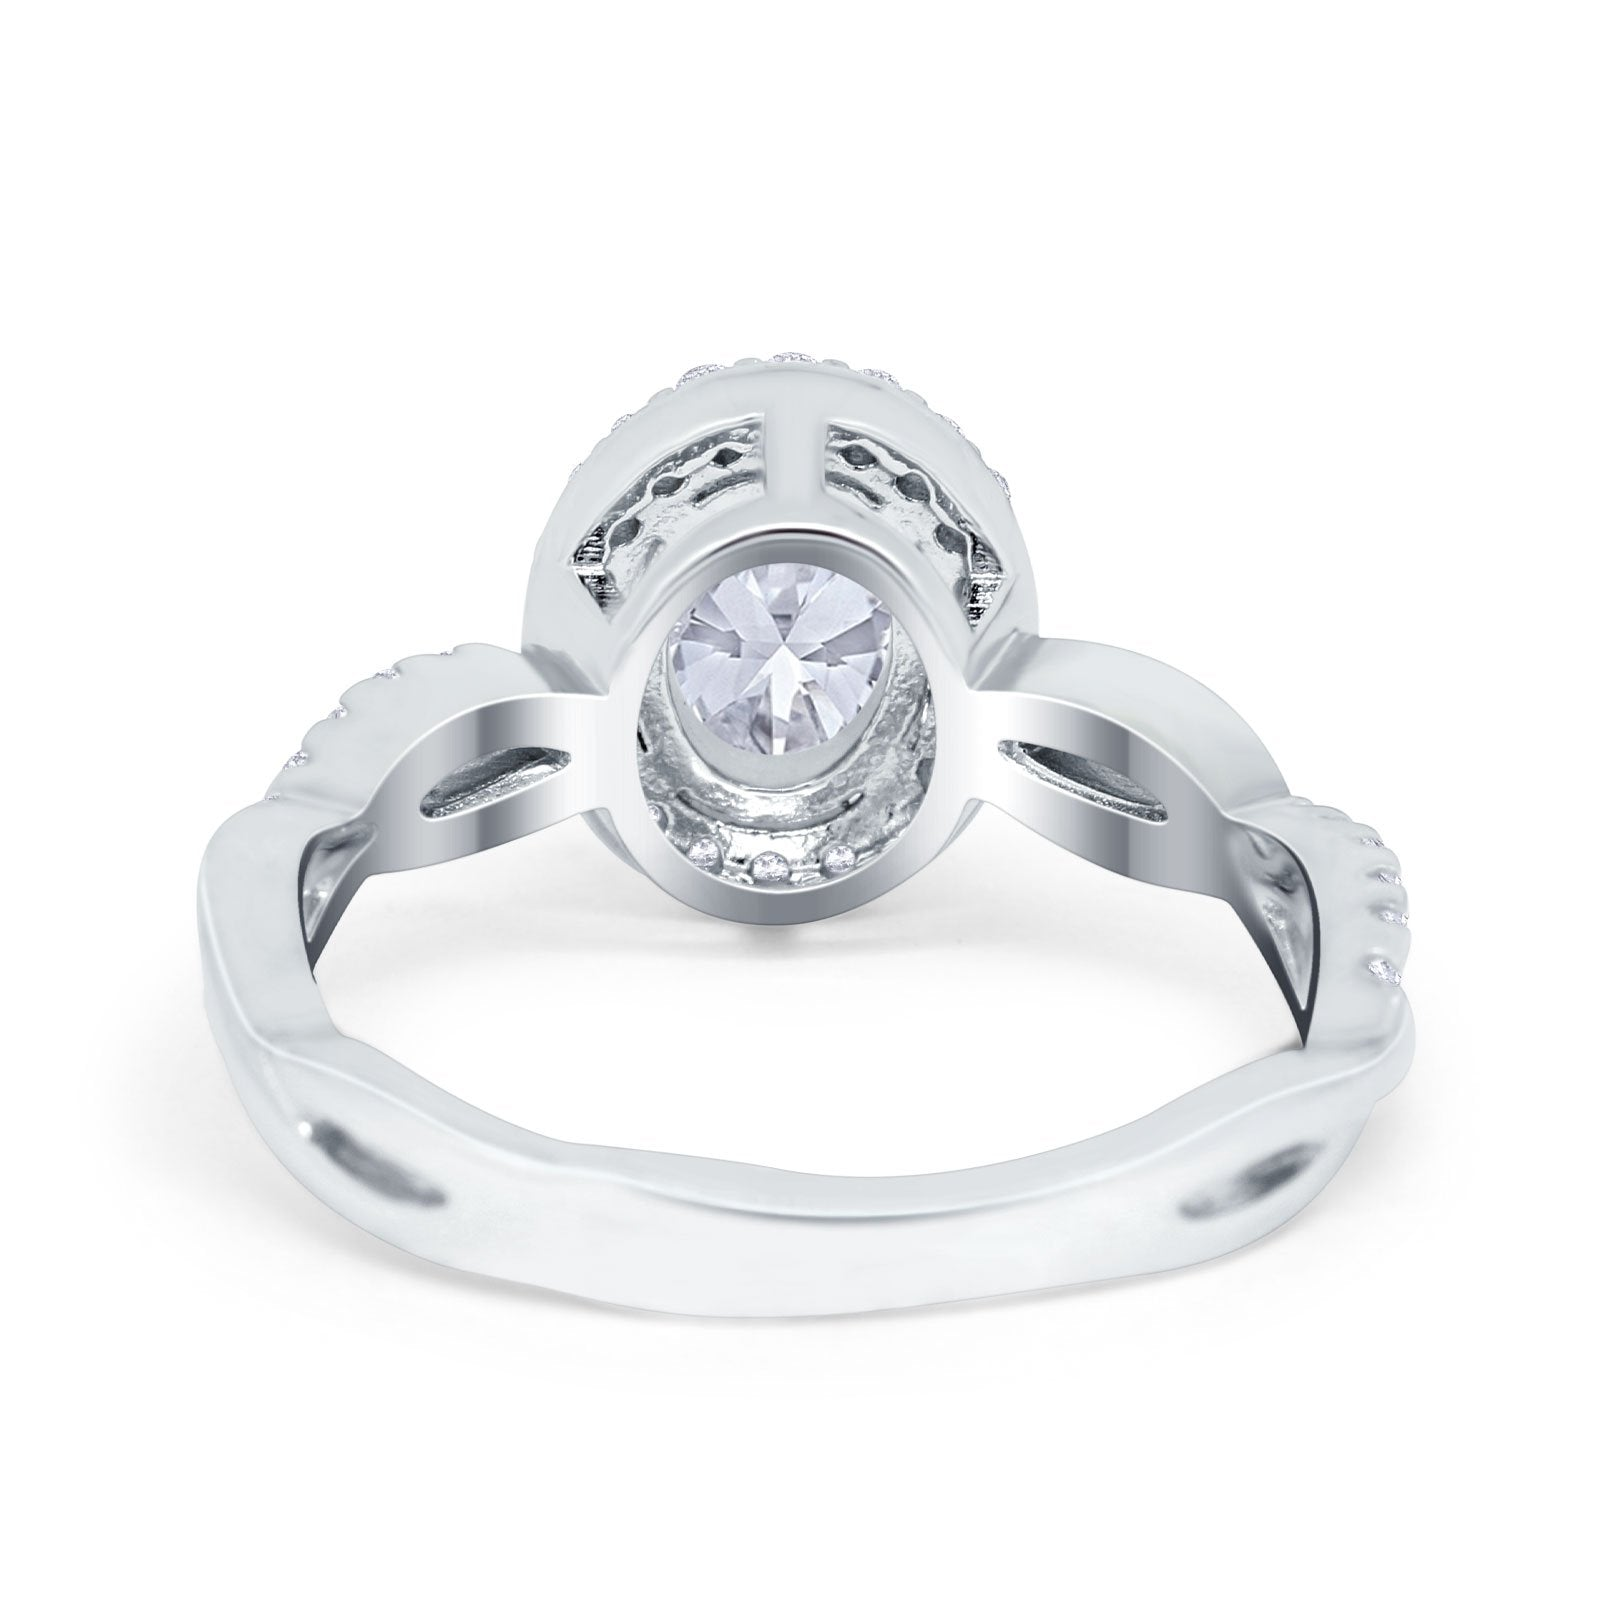 Halo Infinity Shank Engagement Ring Simulated Cubic Zirconia 925 Sterling Silver